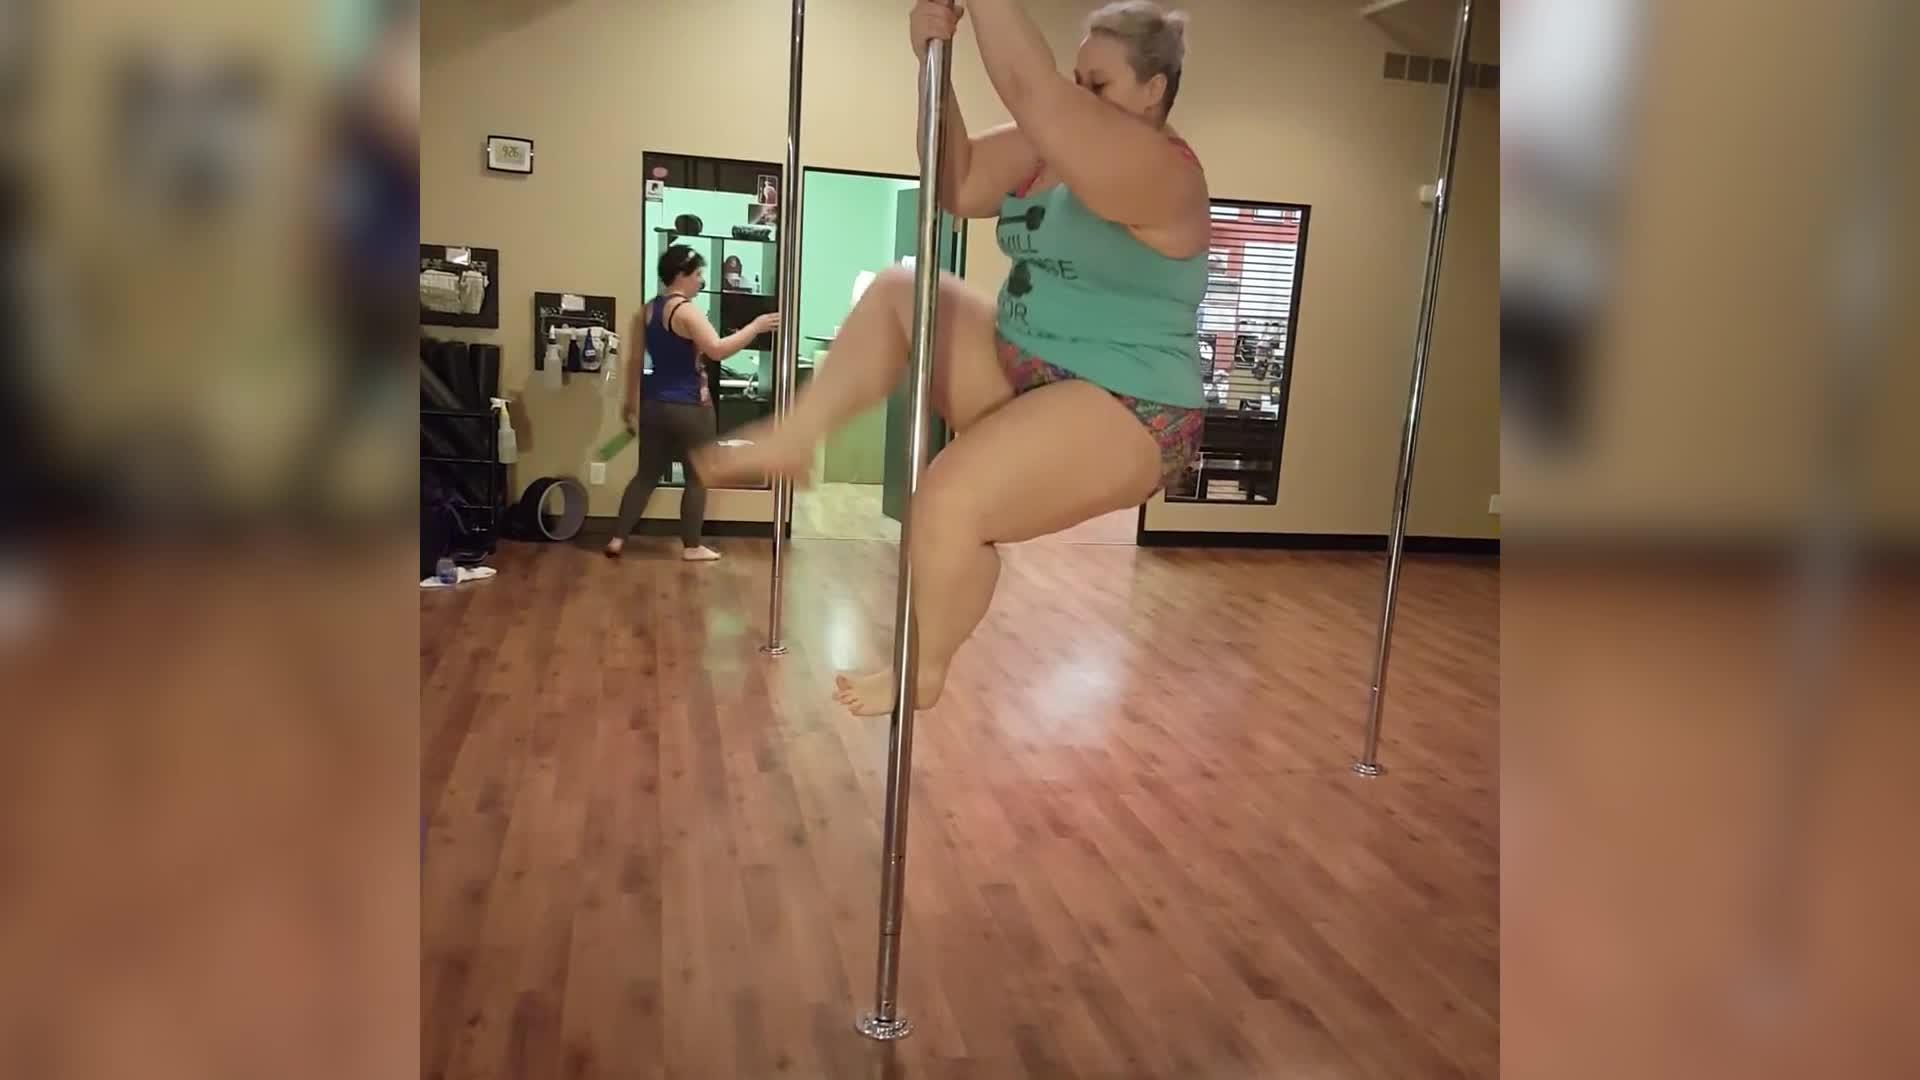 Plus-size pole dancer hits back at her critics